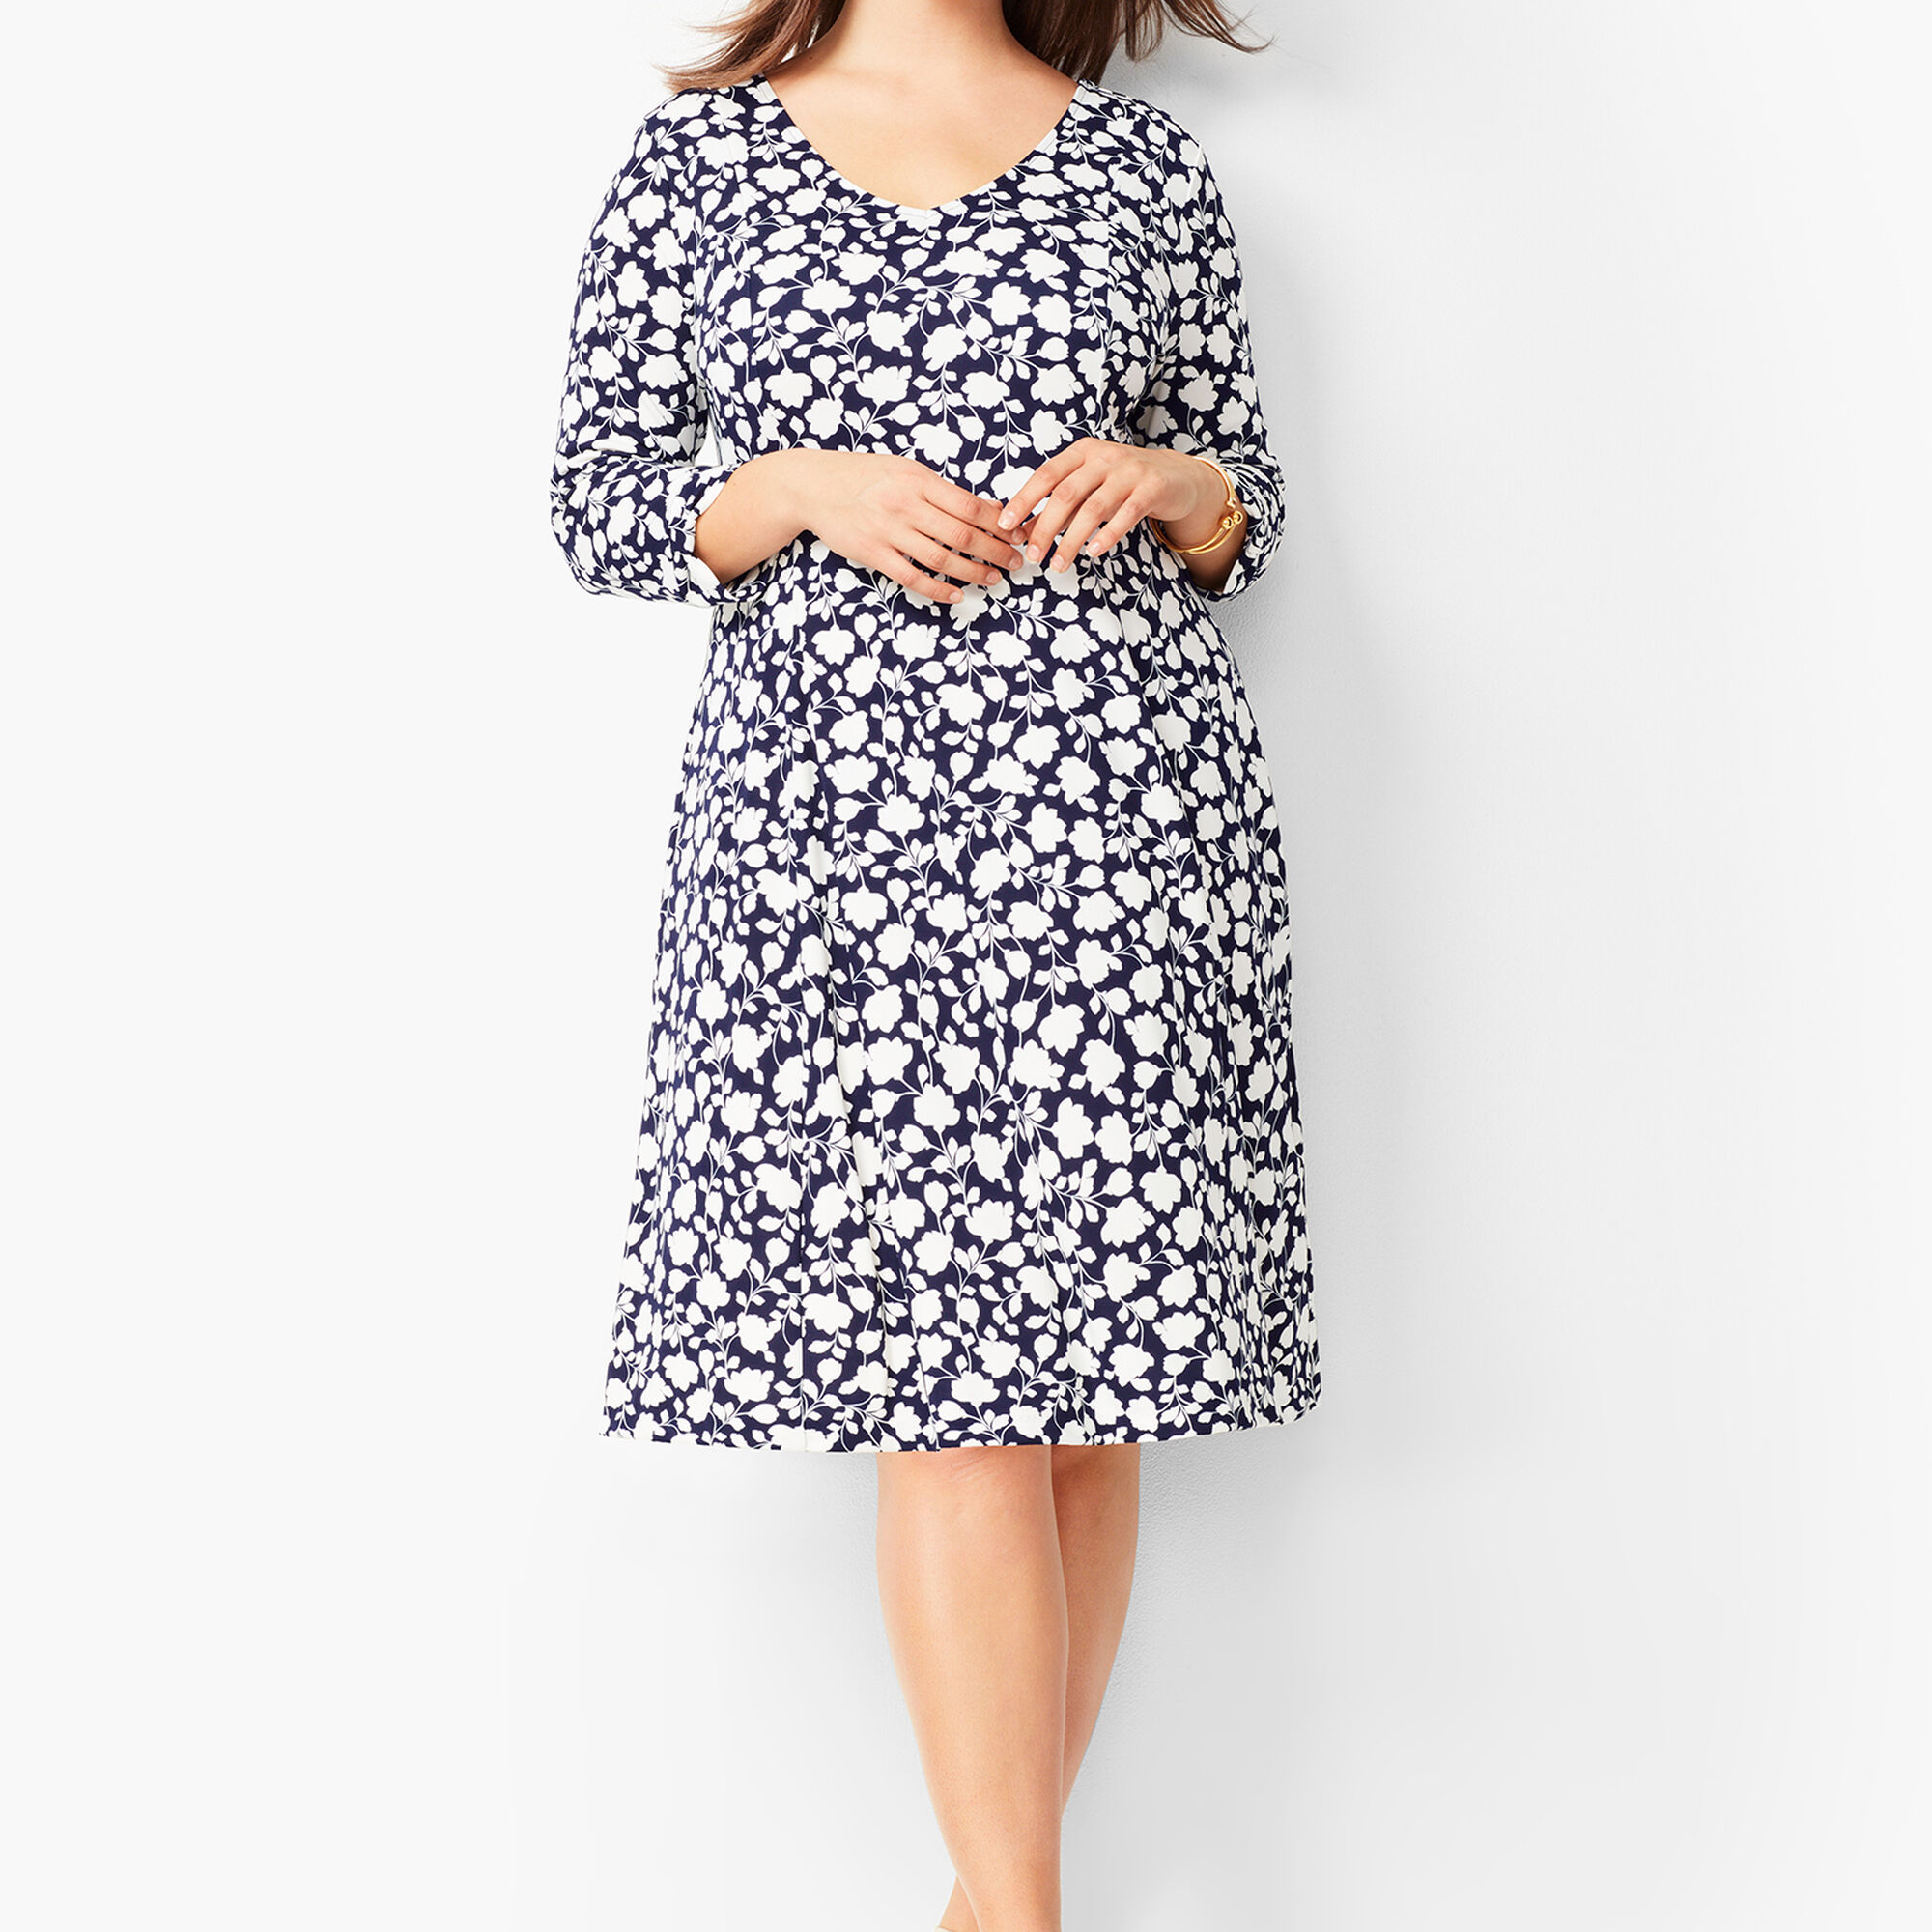 Plus Size Knit Jersey Fit & Flare Dress - Floral